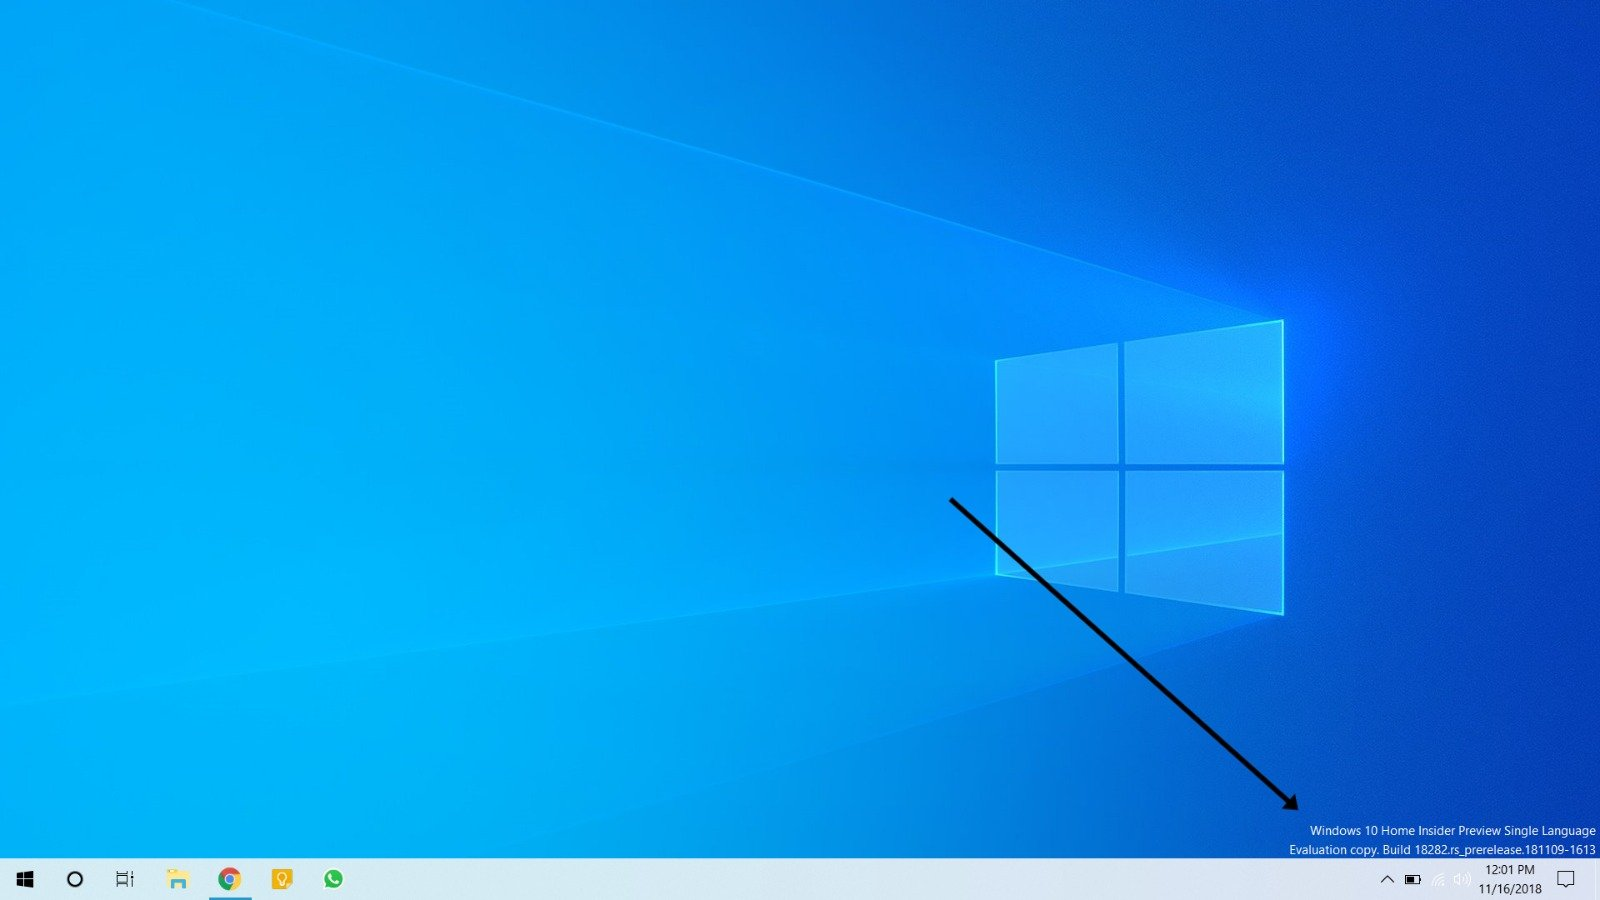 Check if you are on Windows 10 Insider Preview